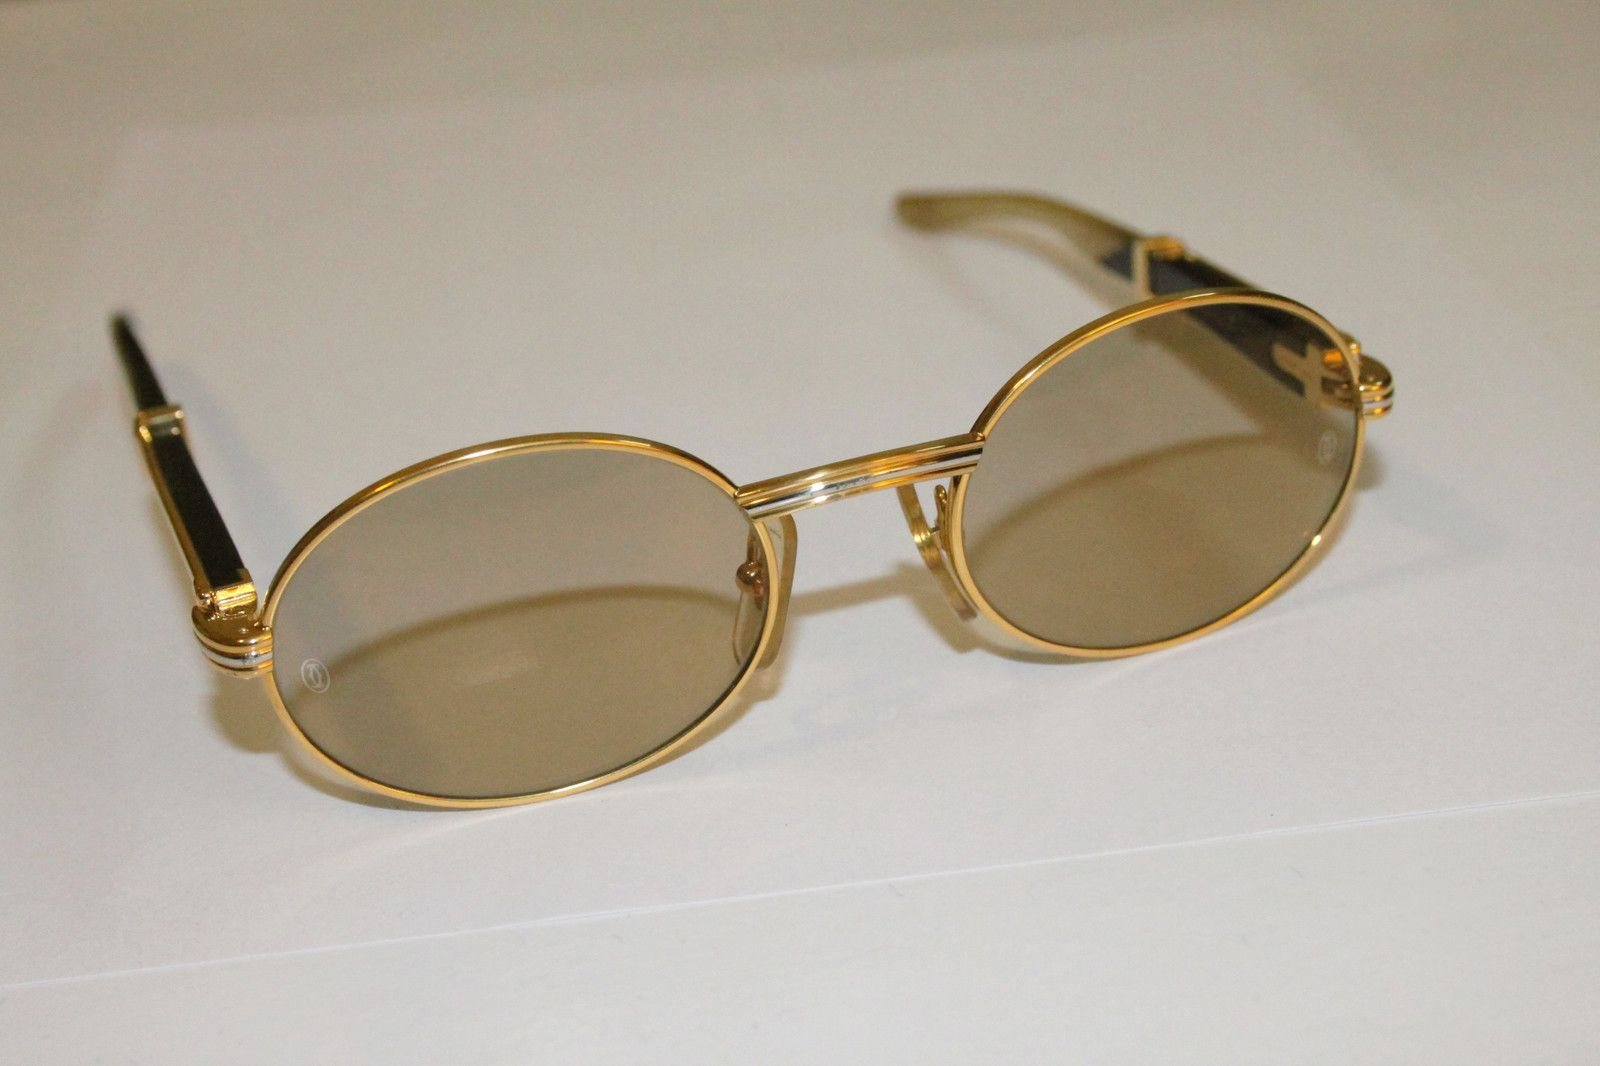 b6ee8a33cc0 Cartier Gold and Wood Sunglasses